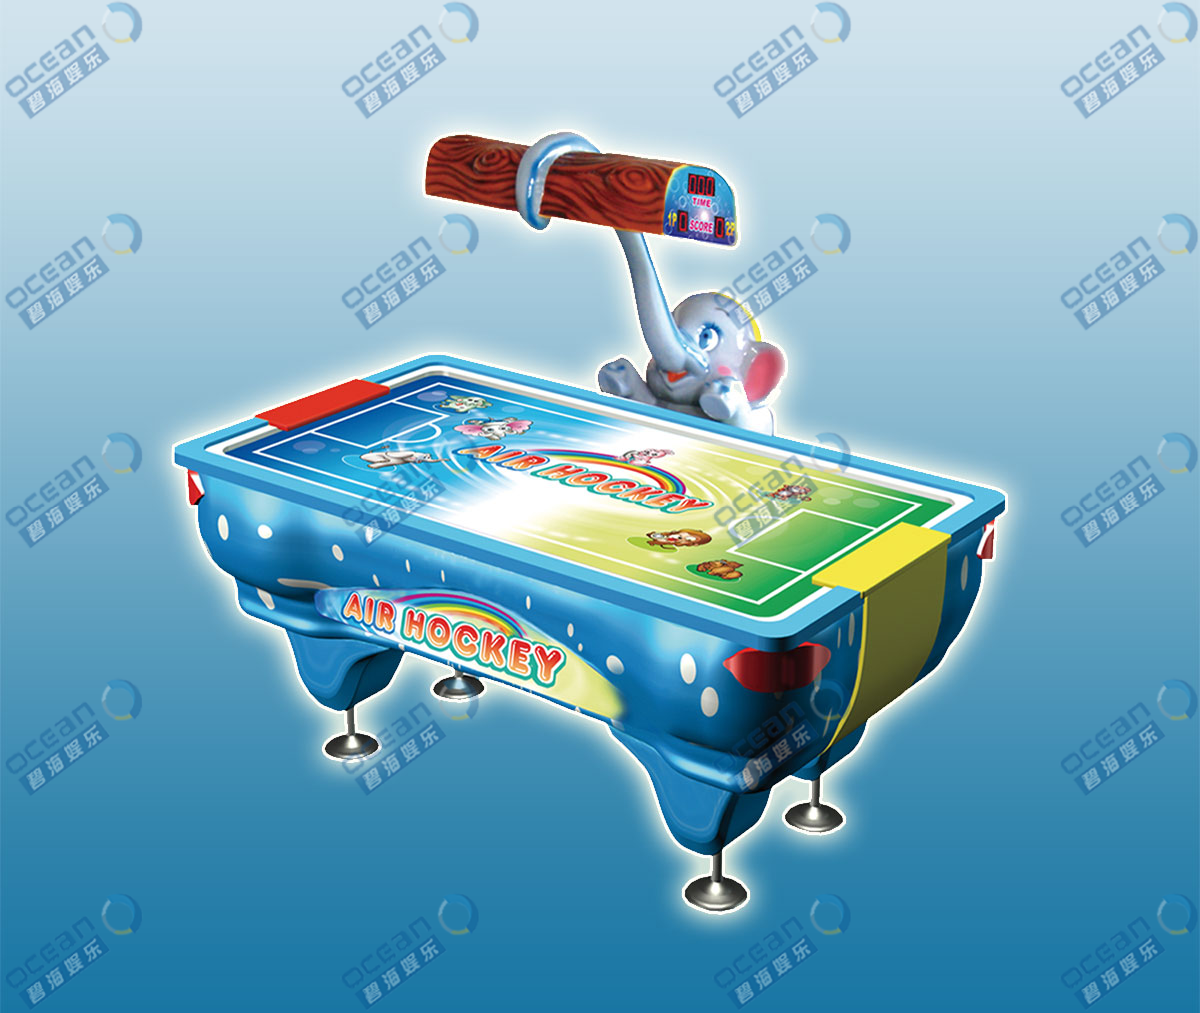 BH075 Air Hockey